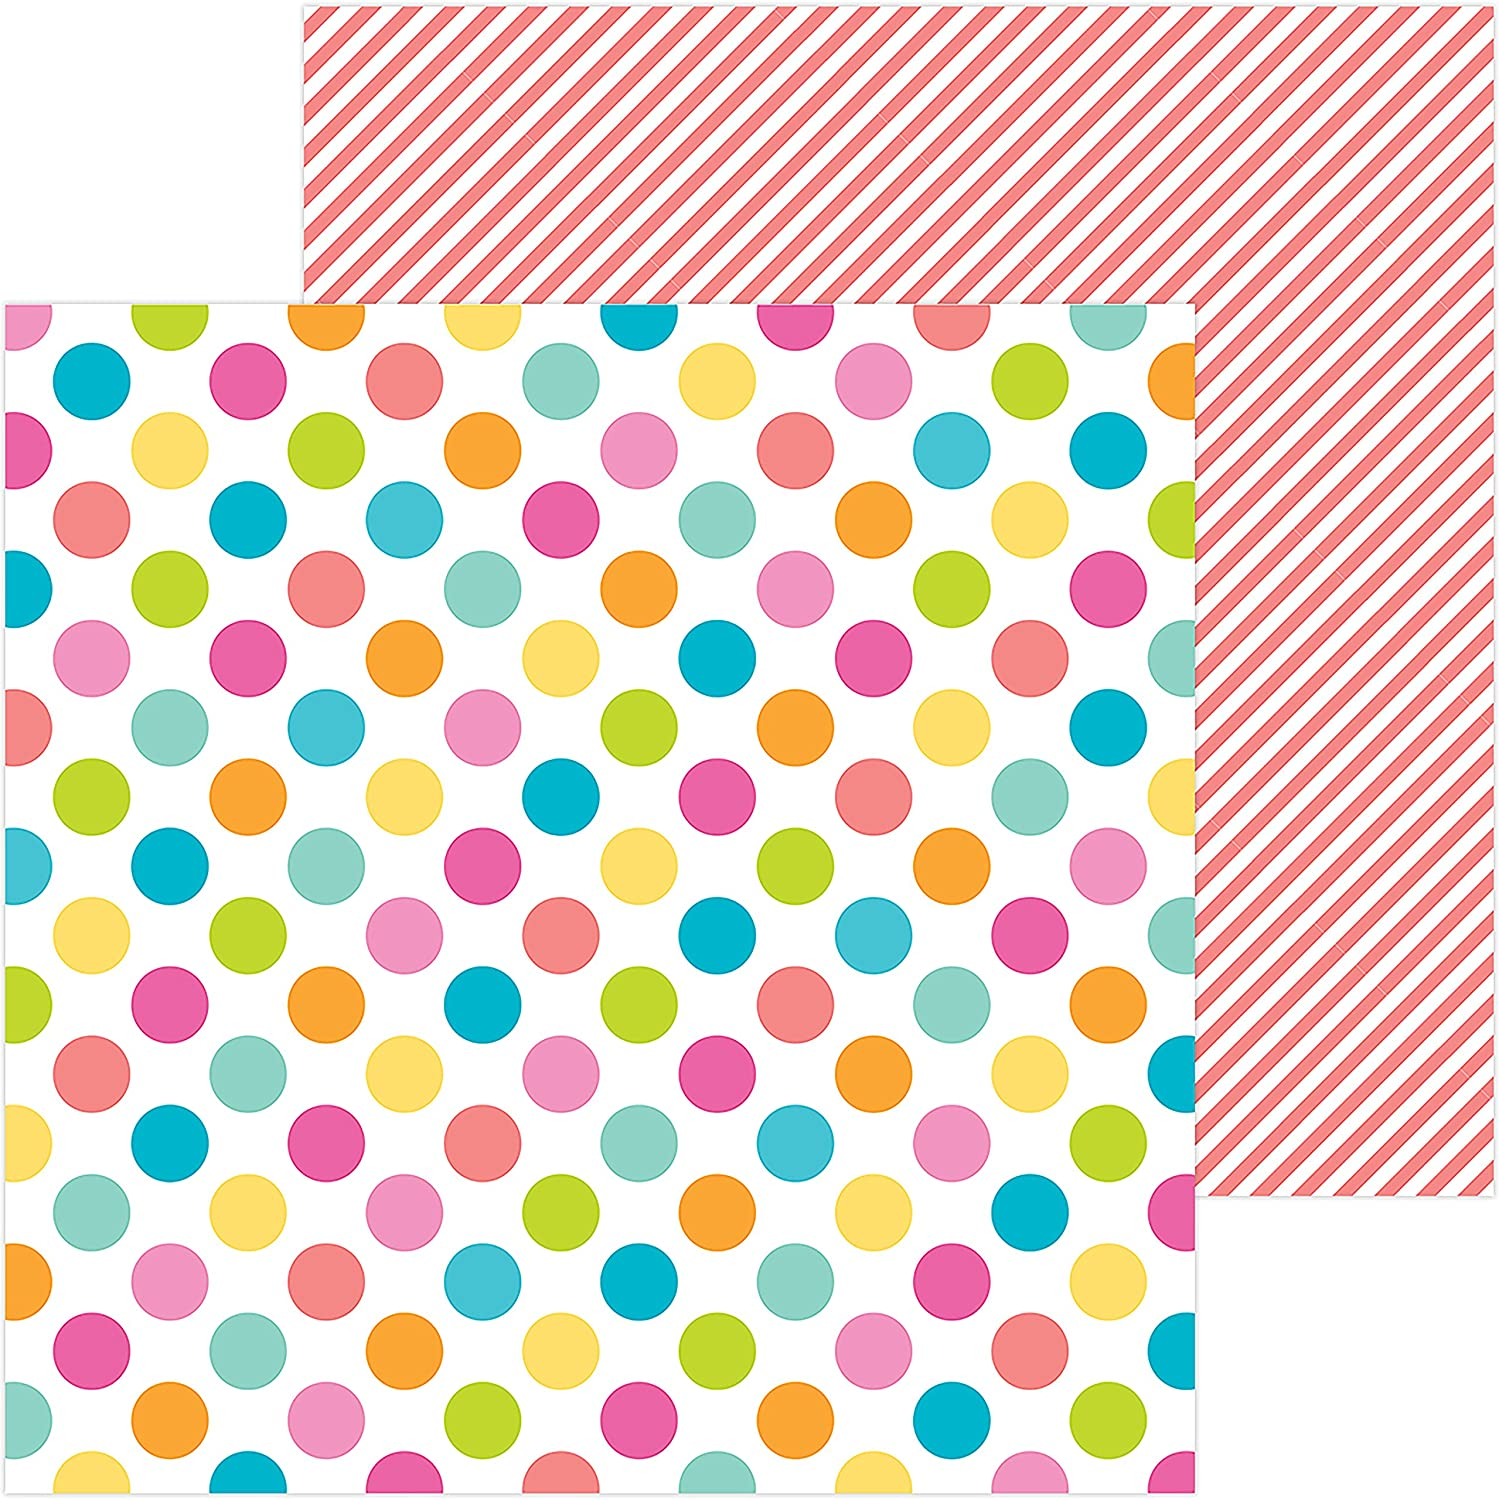 Sweet Summer Double-Sided Cardstock 12 X12 -Beach Bag B07CRTKP8N | Neue Produkte im Jahr 2019